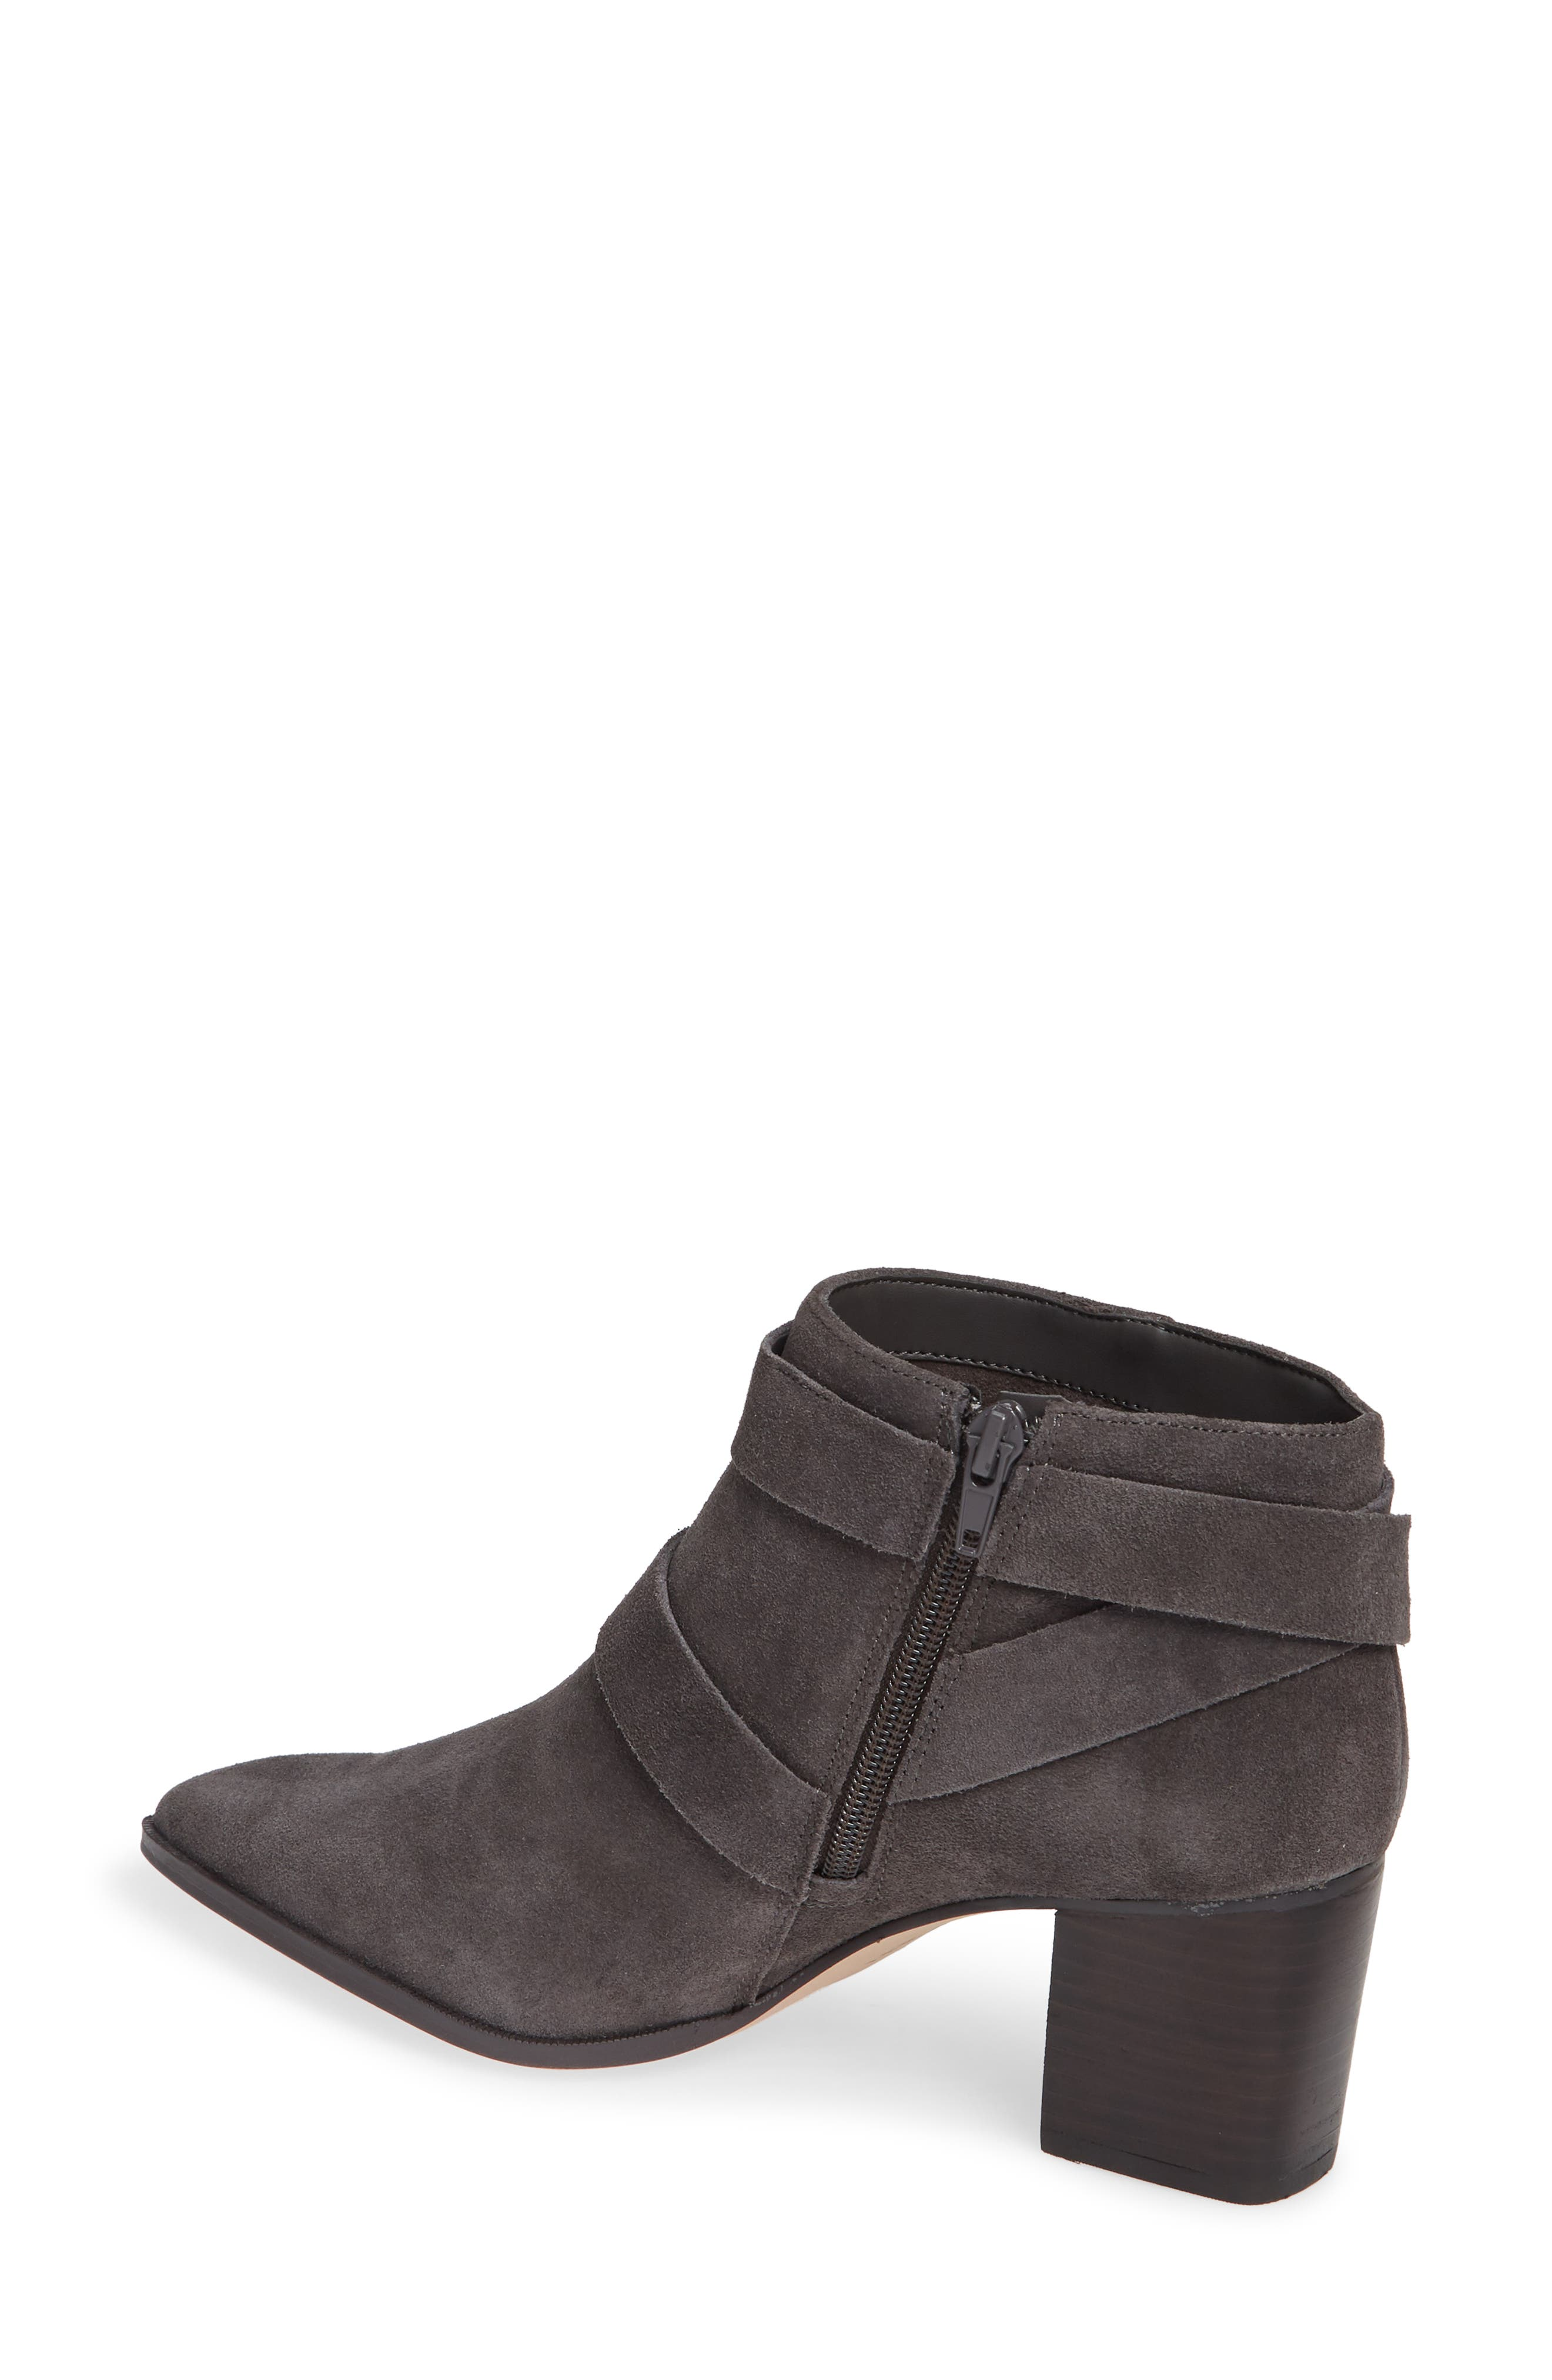 SOLE SOCIETY,                             Dariela Strappy Bootie,                             Alternate thumbnail 2, color,                             IRON SUEDE